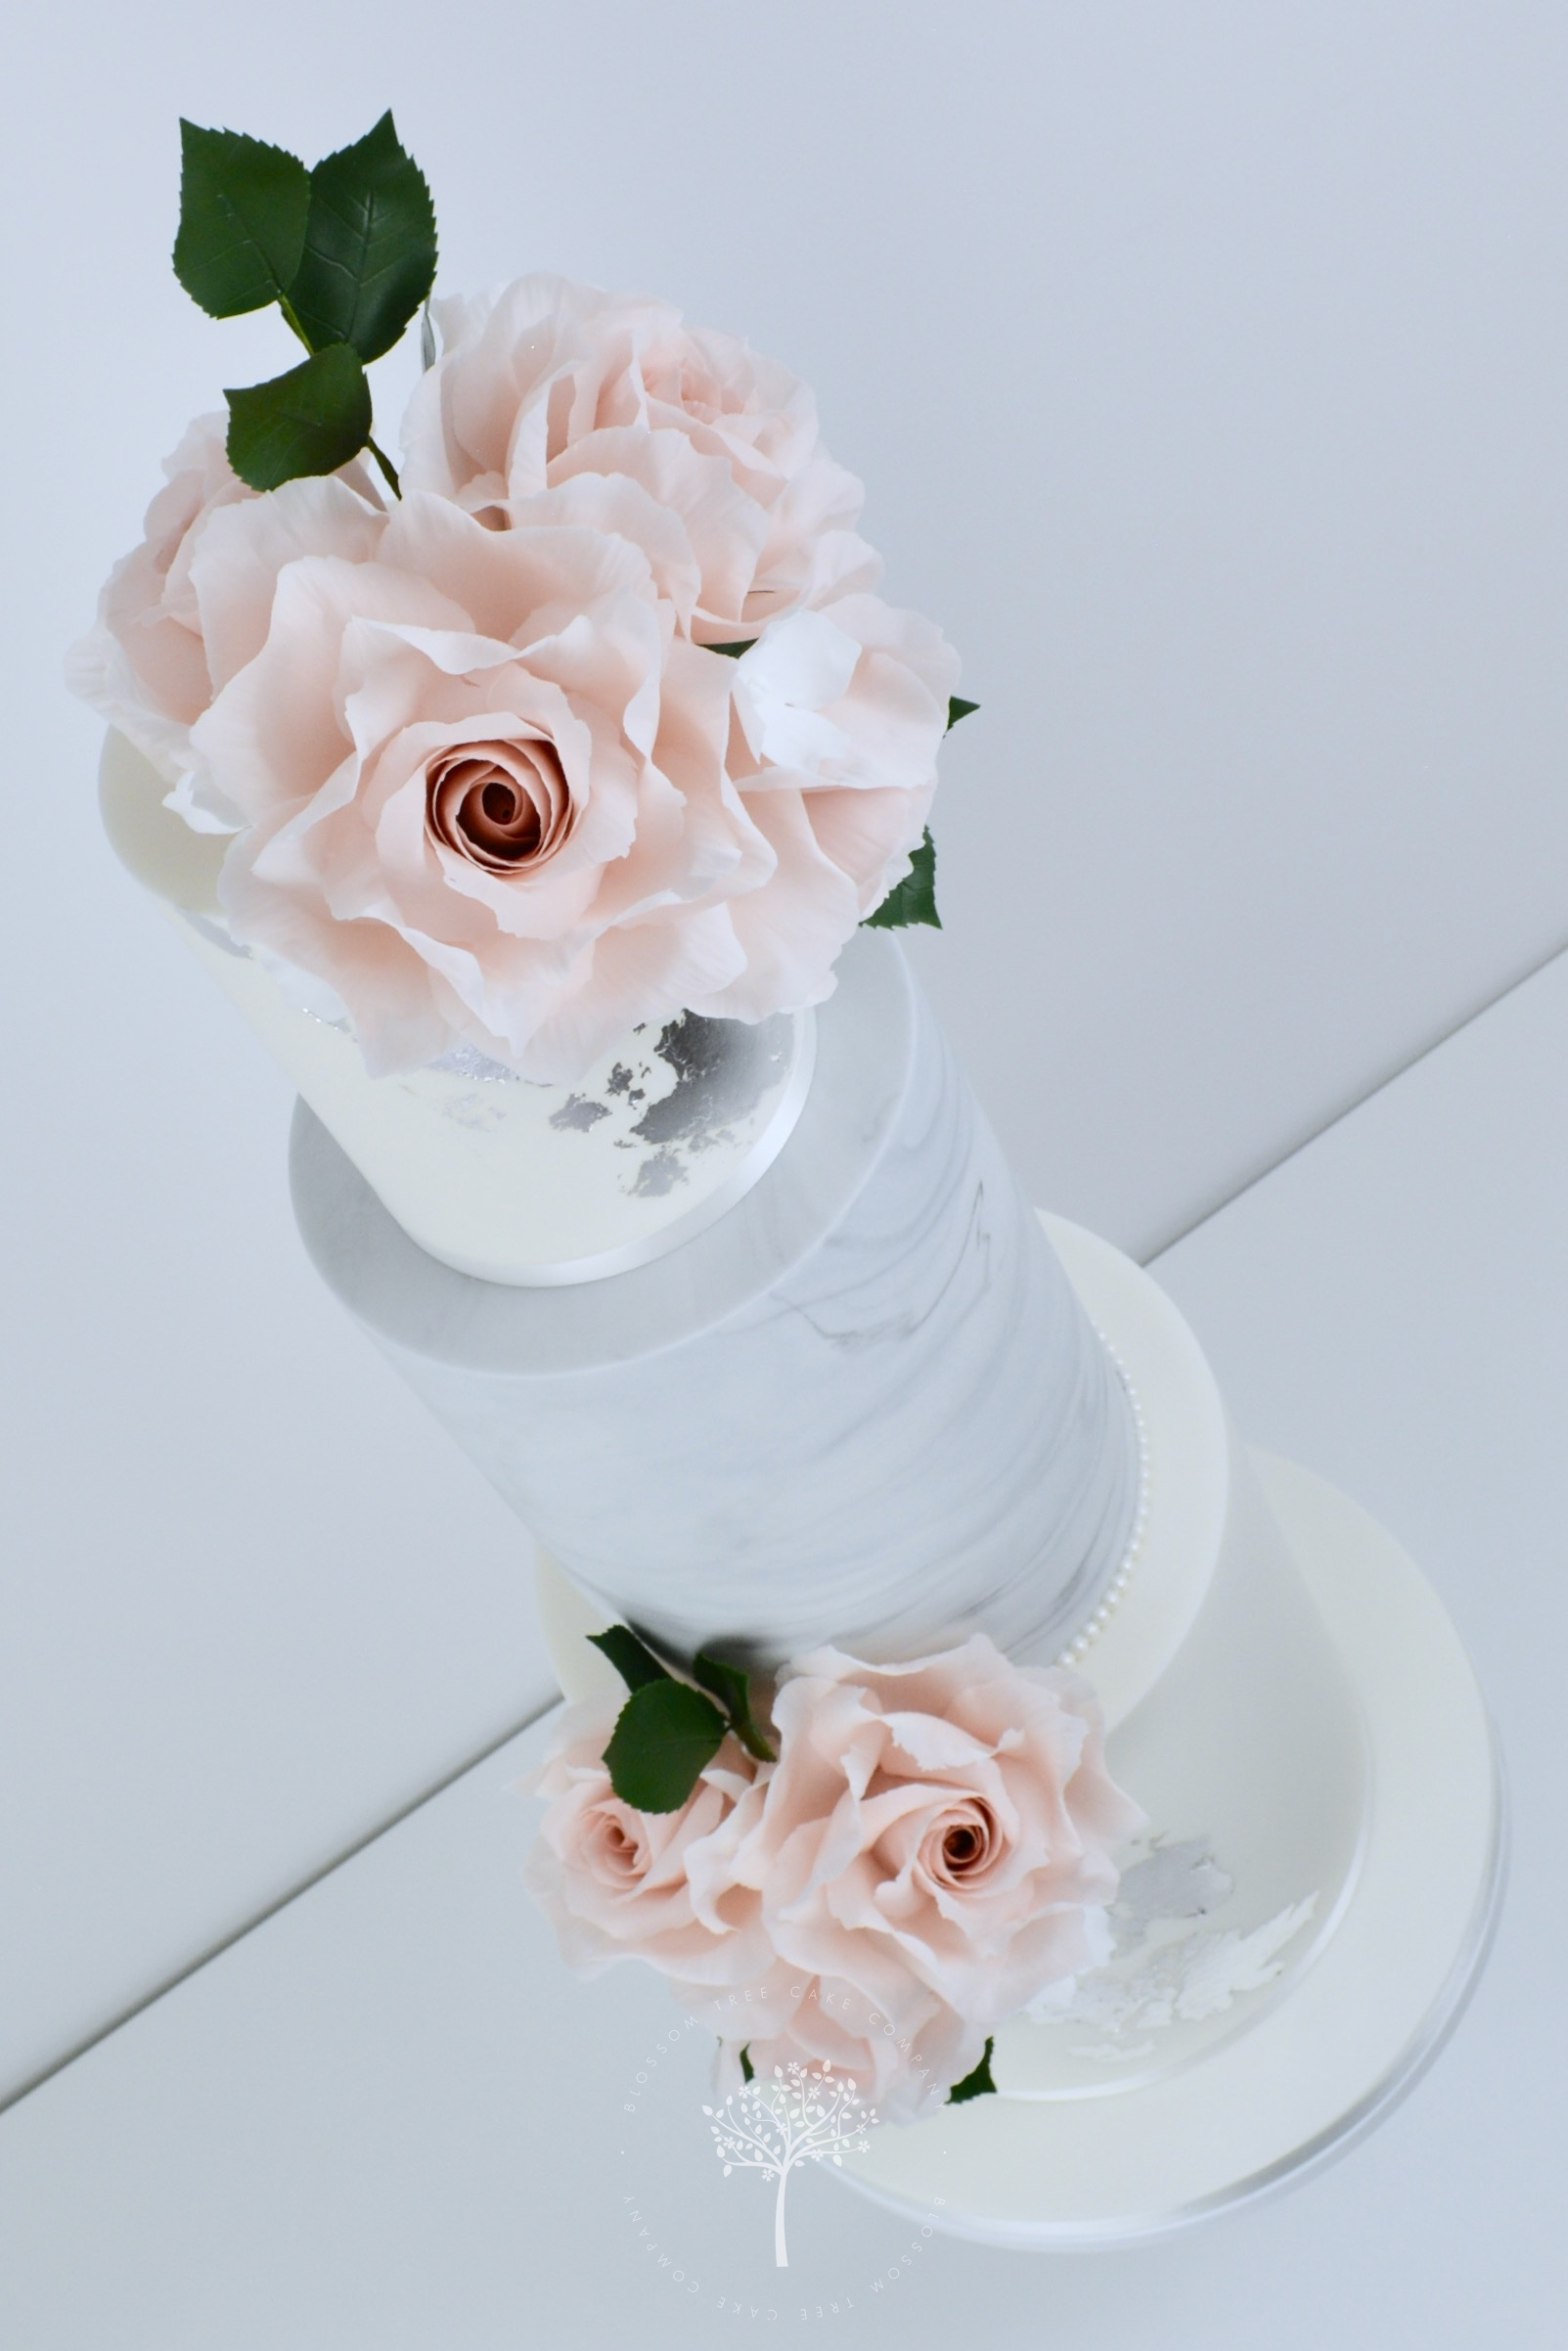 Blush Roses & Silver wedding cake by Blossom Tree Cake Company Harrogate North Yorkshire - angle.jpg